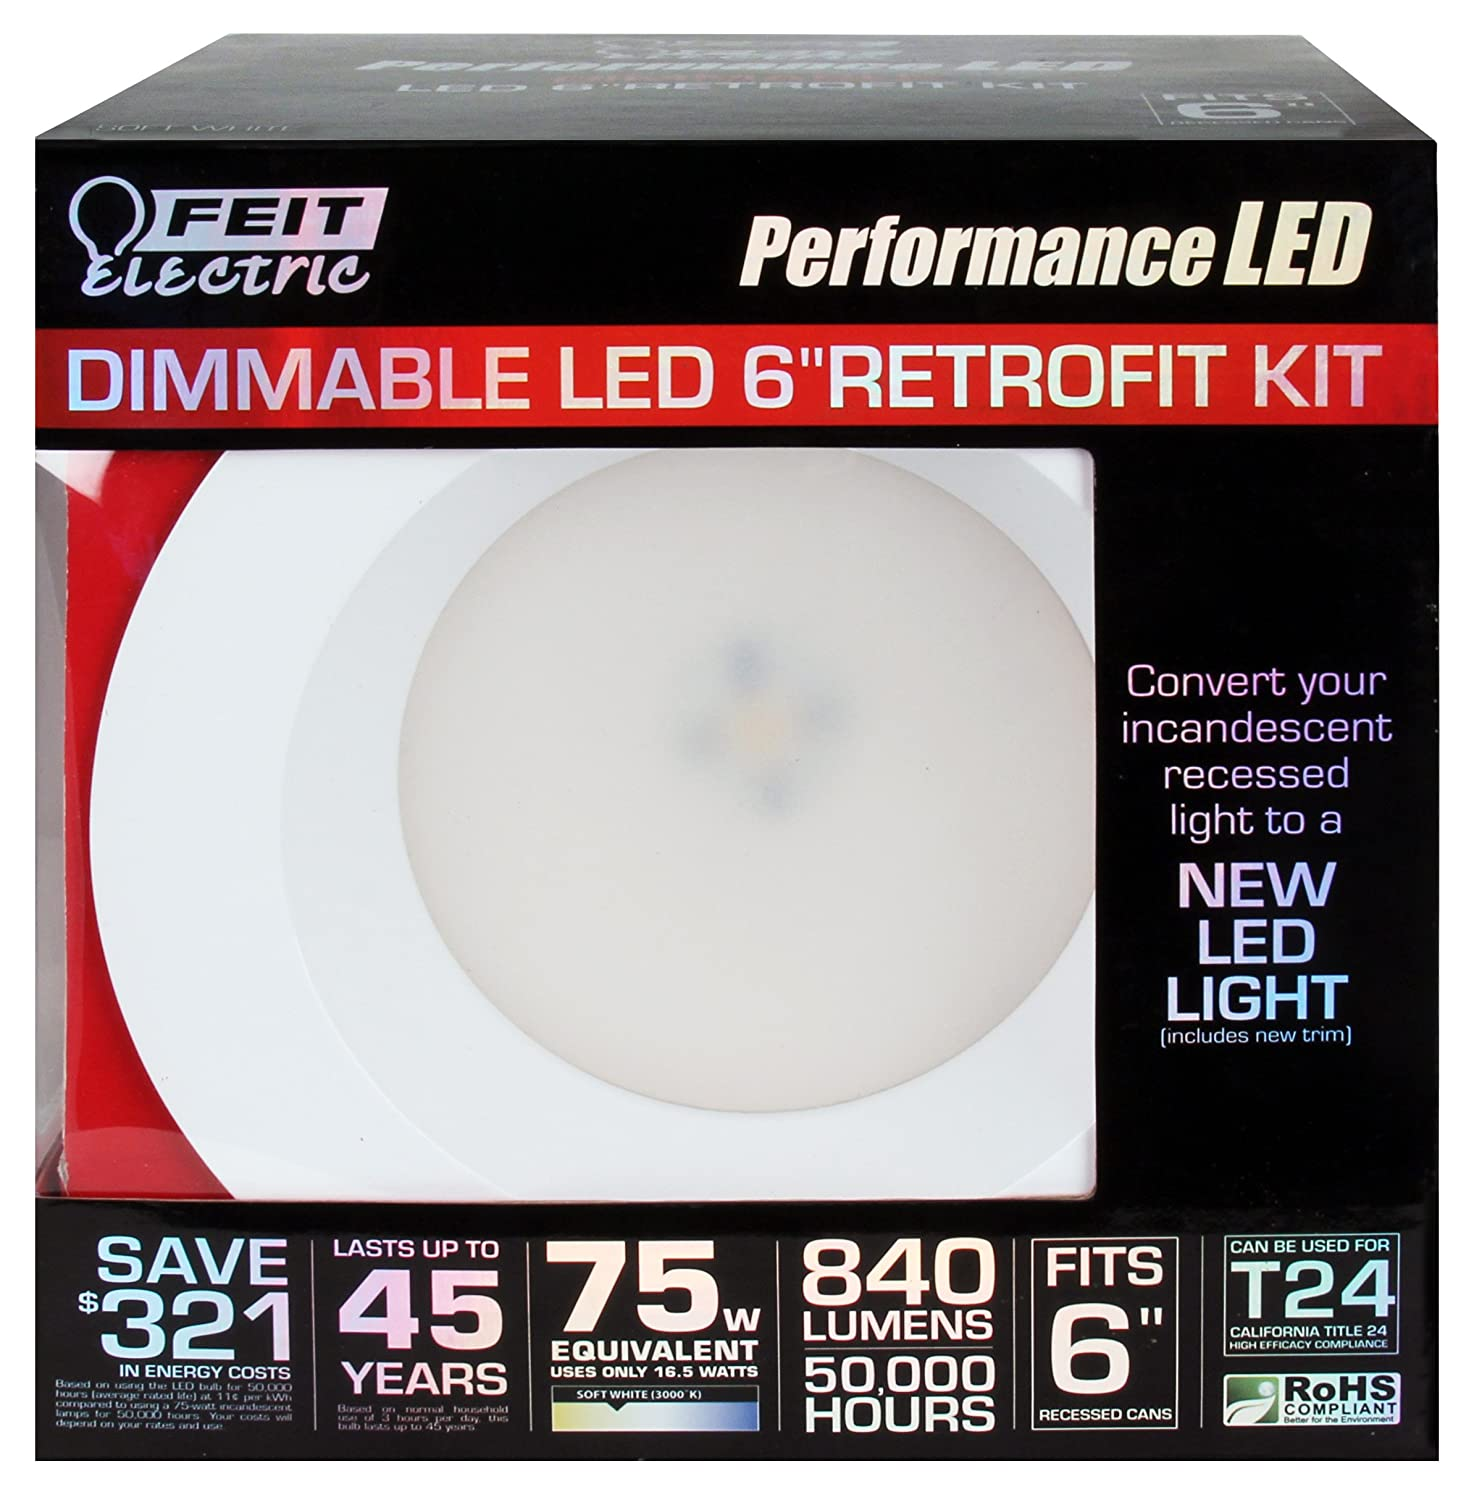 Feit Electric LEDR6/3K LED Dimmable Retrofit Kit - Led Household Light Bulbs - Amazon.com  sc 1 st  Amazon.com & Feit Electric LEDR6/3K LED Dimmable Retrofit Kit - Led Household ... azcodes.com